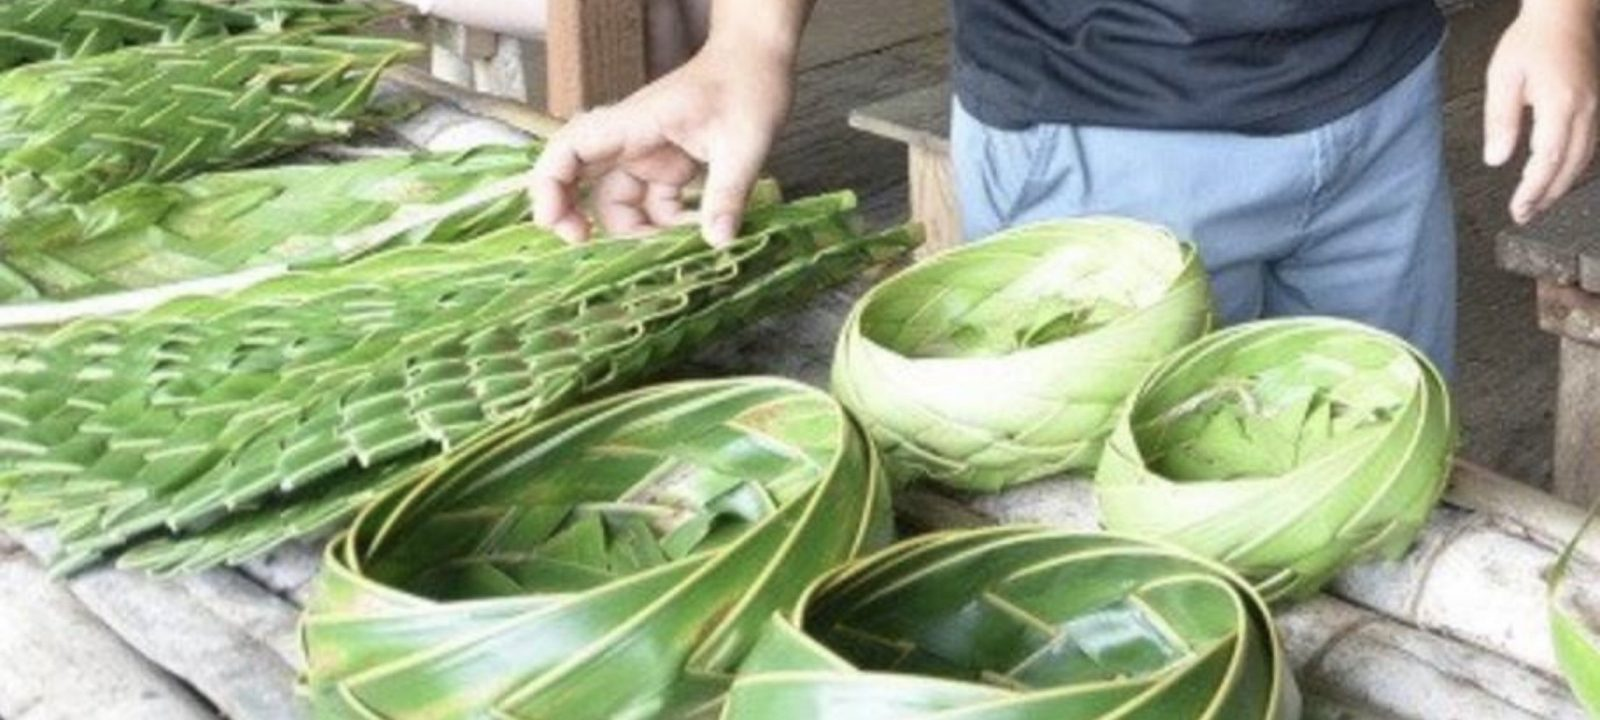 Coconut Leaf Weaving Workshops at the Valley of the Latte Guam